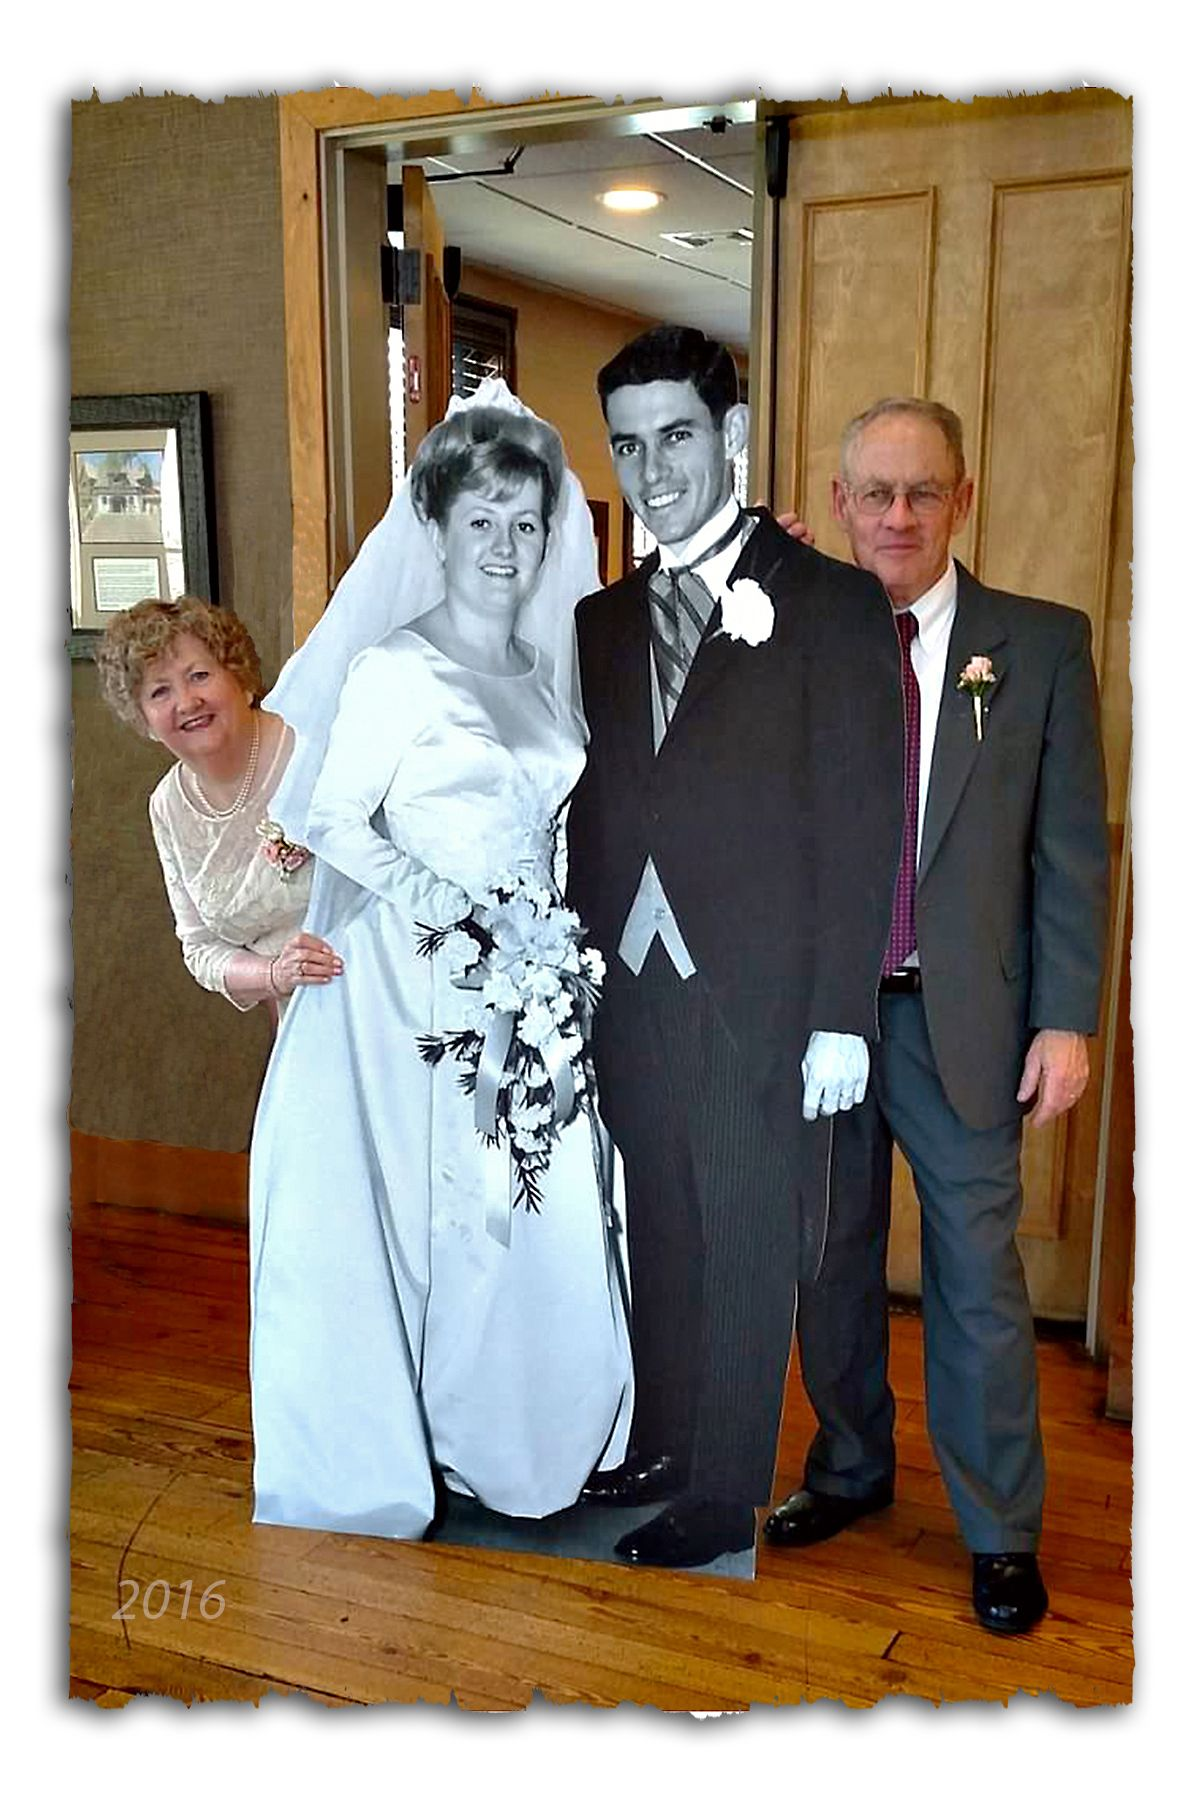 first year wedding anniversary gift ideas pinterest%0A A cutout wedding picture taken    years ago was a hit at our Wedding  Anniversary celebration  Here u    s the site I ordered it from  www